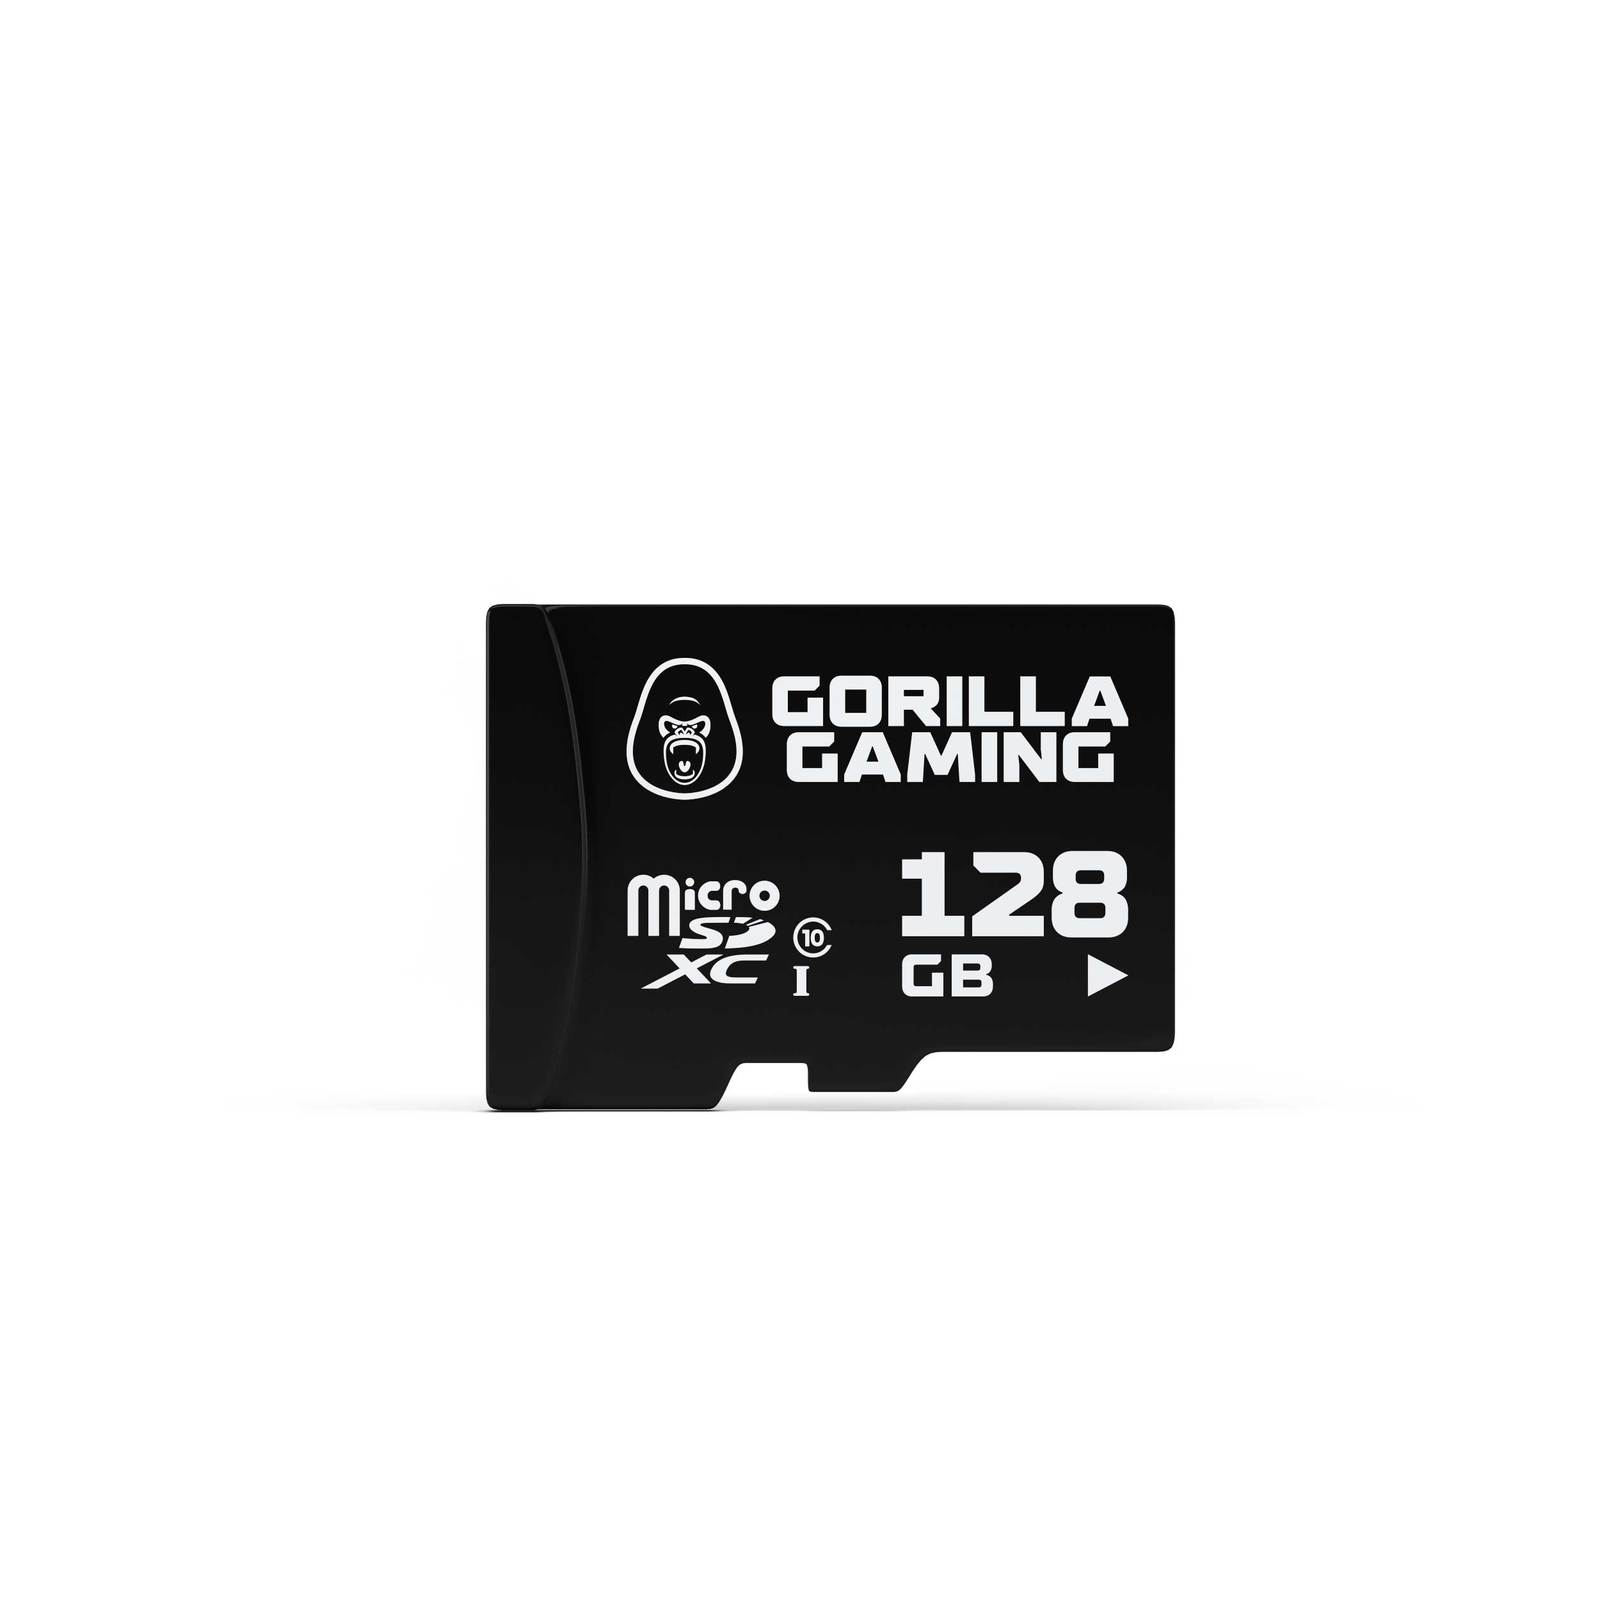 Gorilla Gaming Switch 128GB Memory Card for Switch image